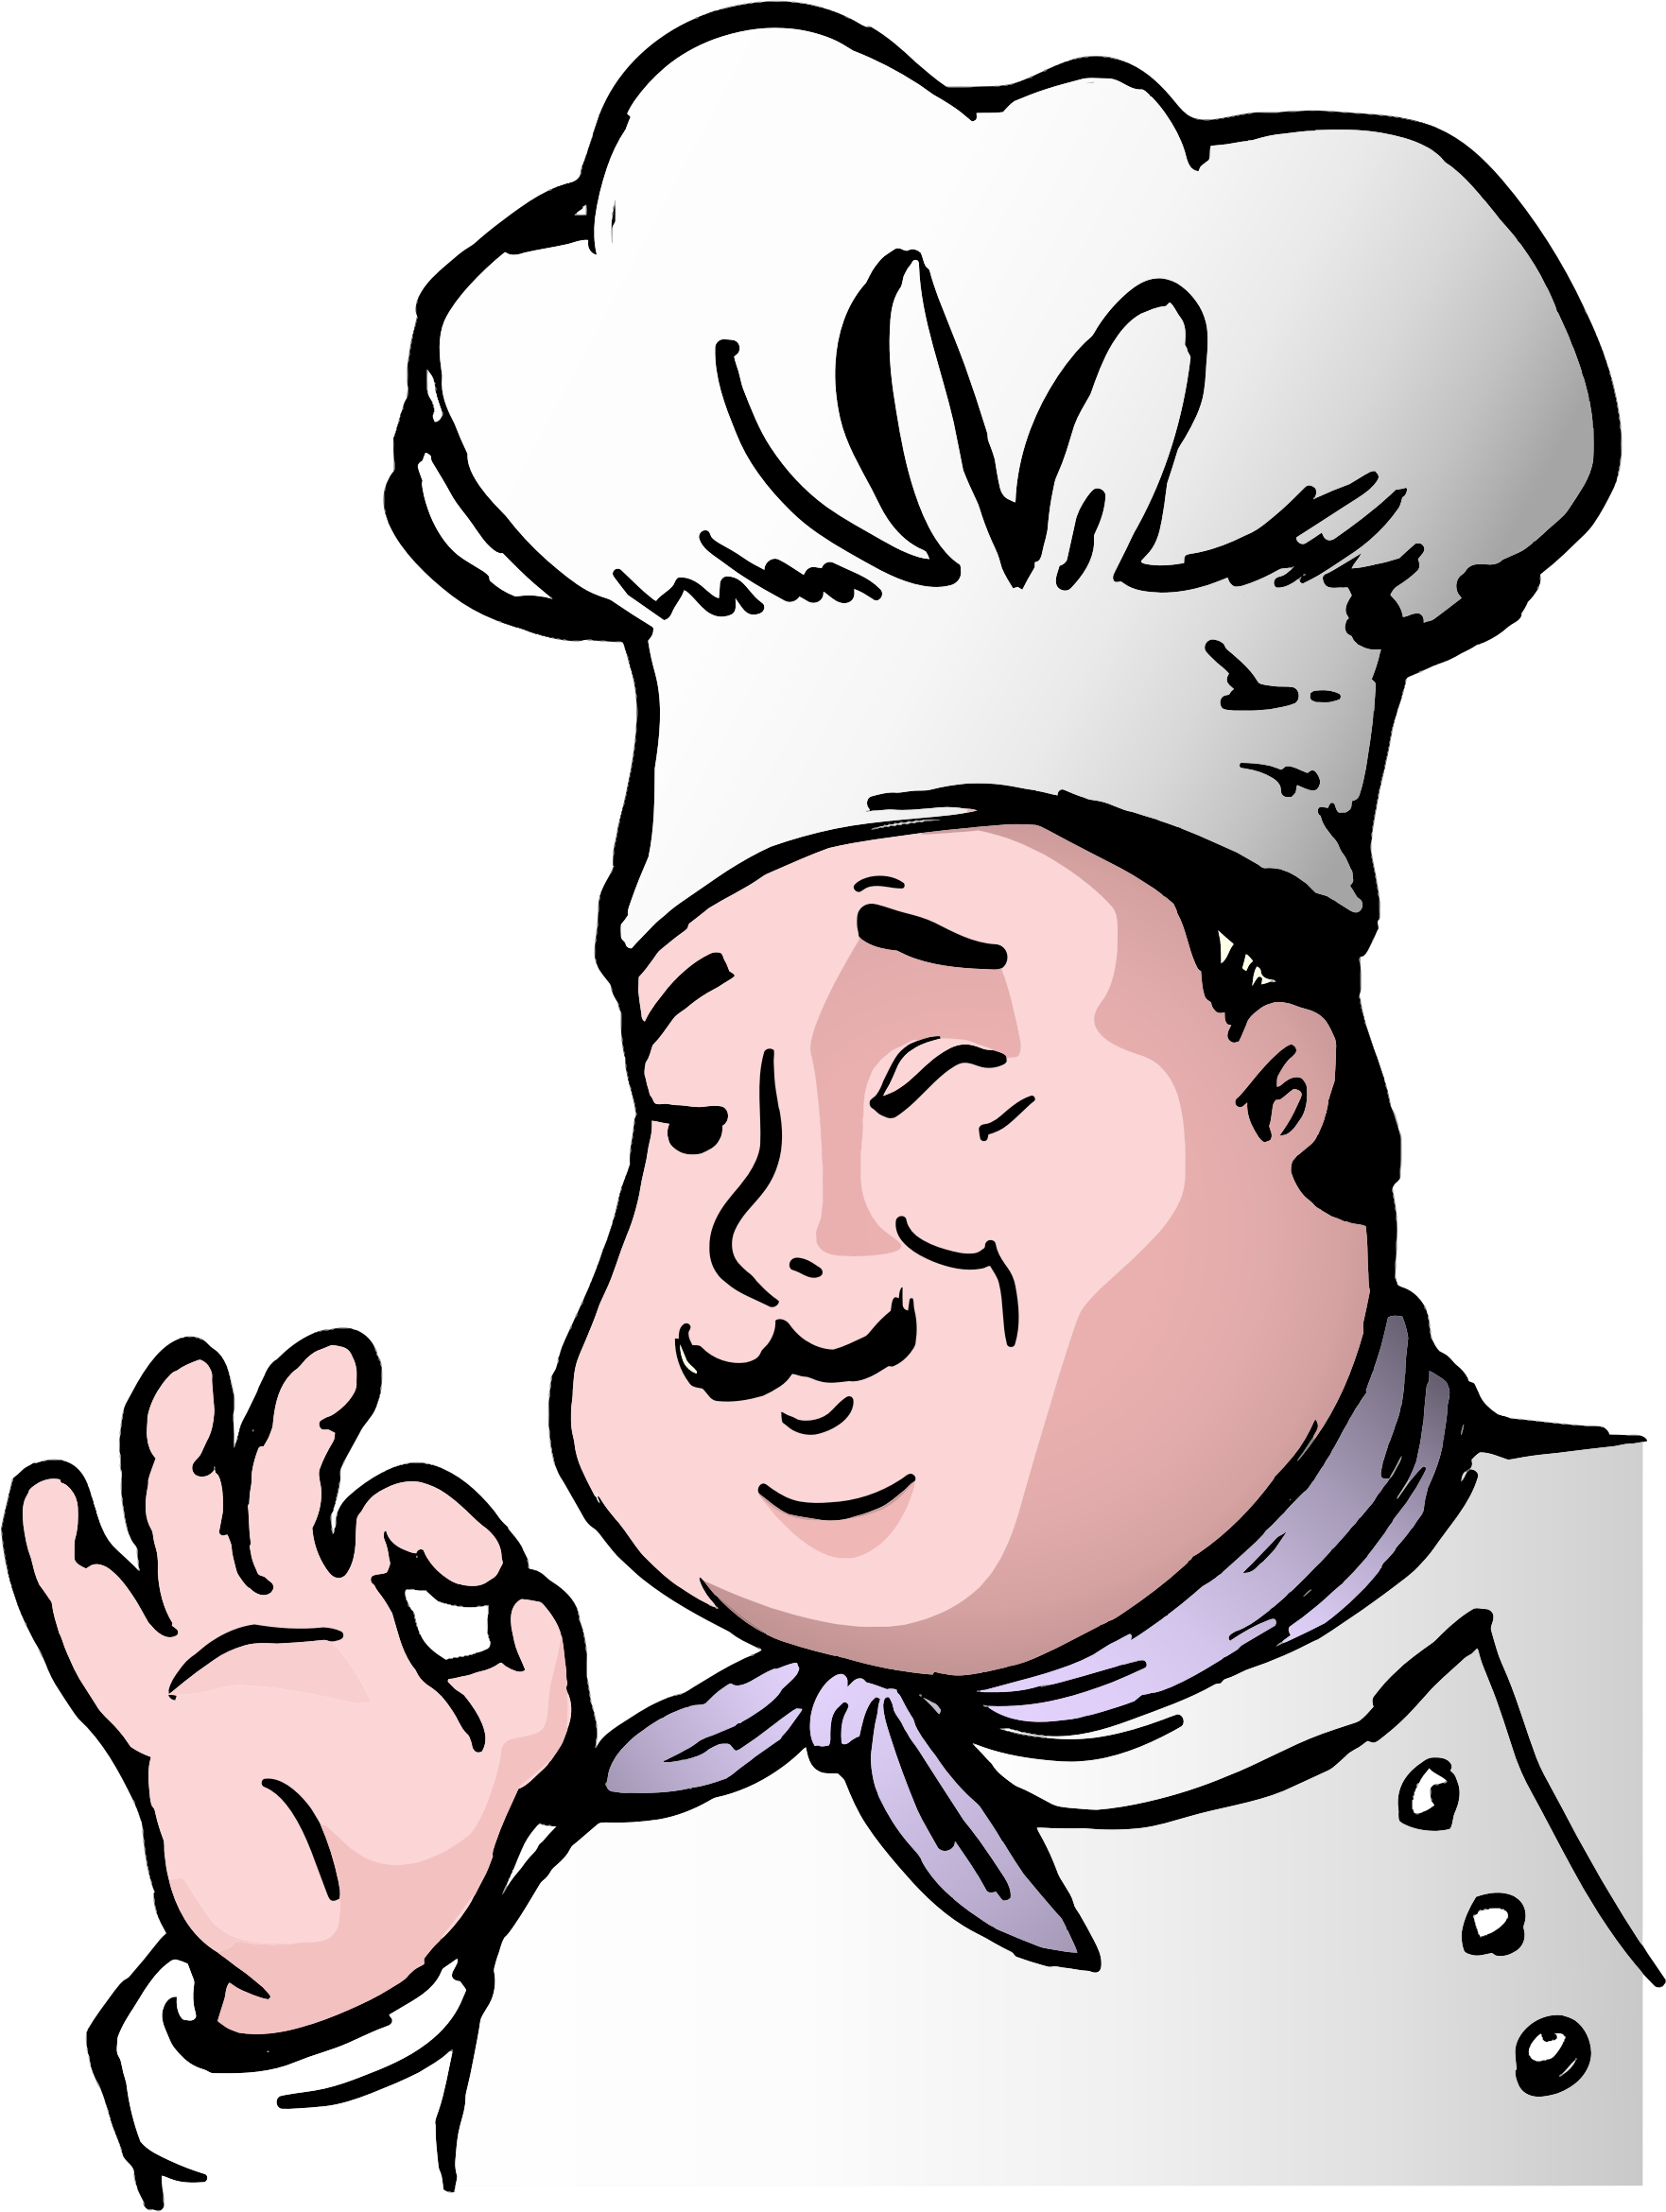 Clipart chef graphic black and white Clipart - Chef graphic black and white